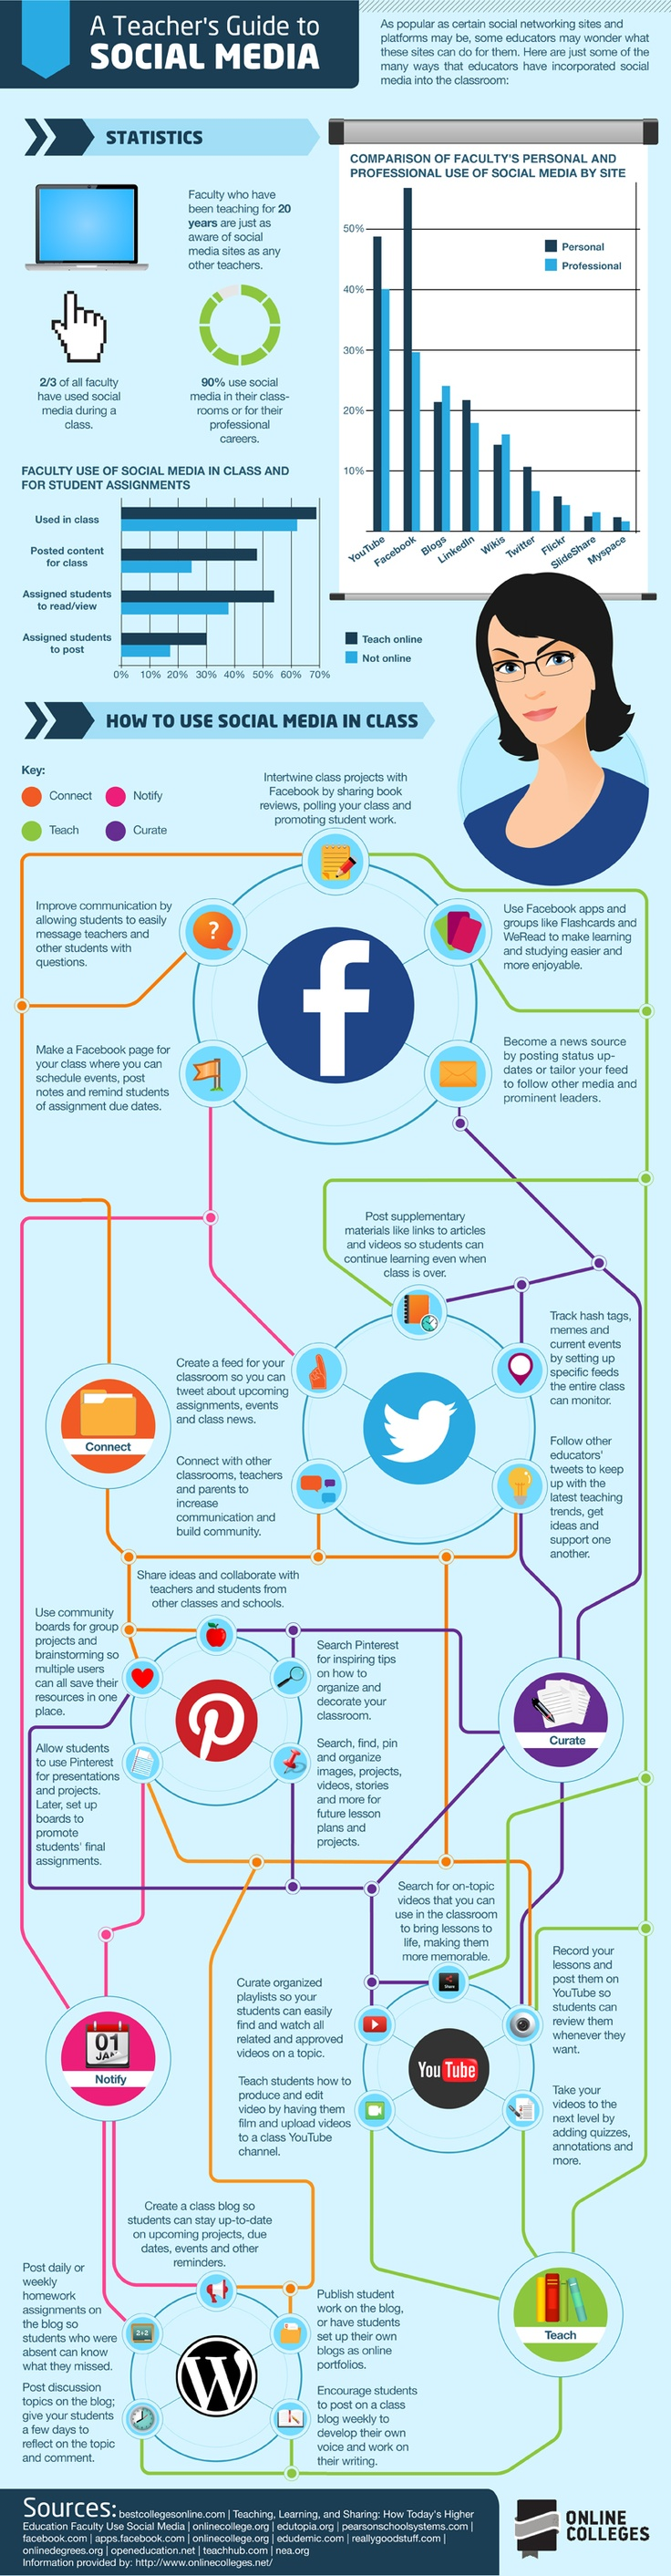 Fresh on IGM > Social Media in Education - Being an educator in the digital era gives you the opportunity to utilize new means so as to facilitate knowledge diffusion and team-working as well as to promote practicality in classroom